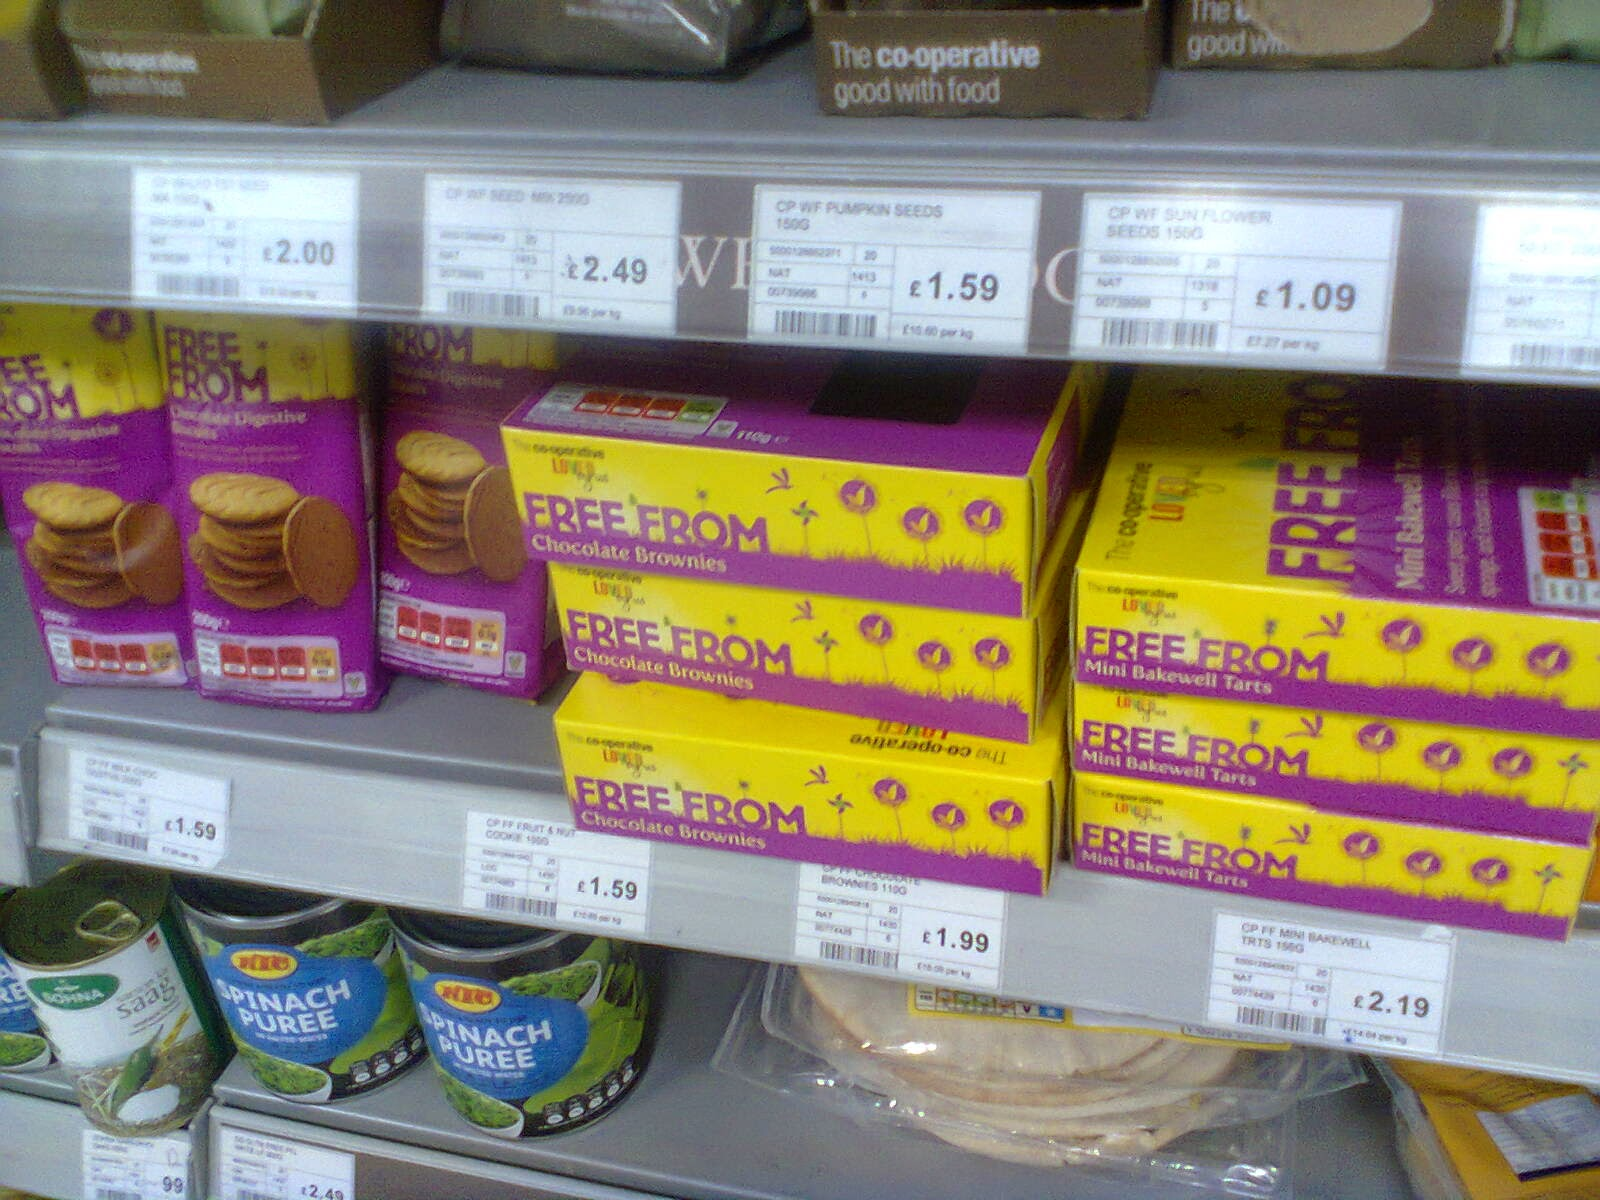 Three of the newly re-branded Free From products at the Co-operative